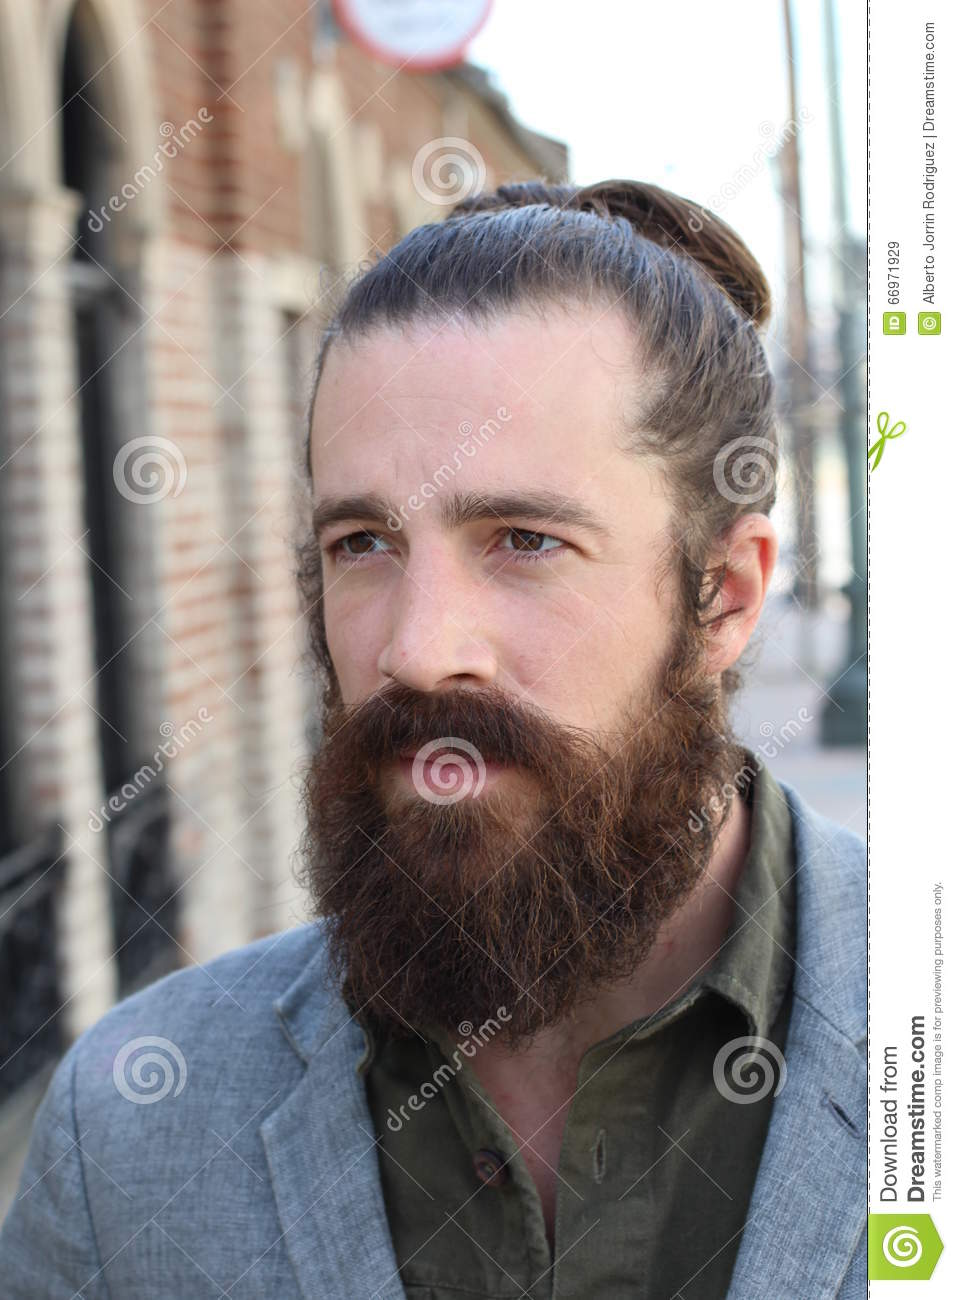 Profile Of Young Bearded Man With Man Bun And A Very Nice